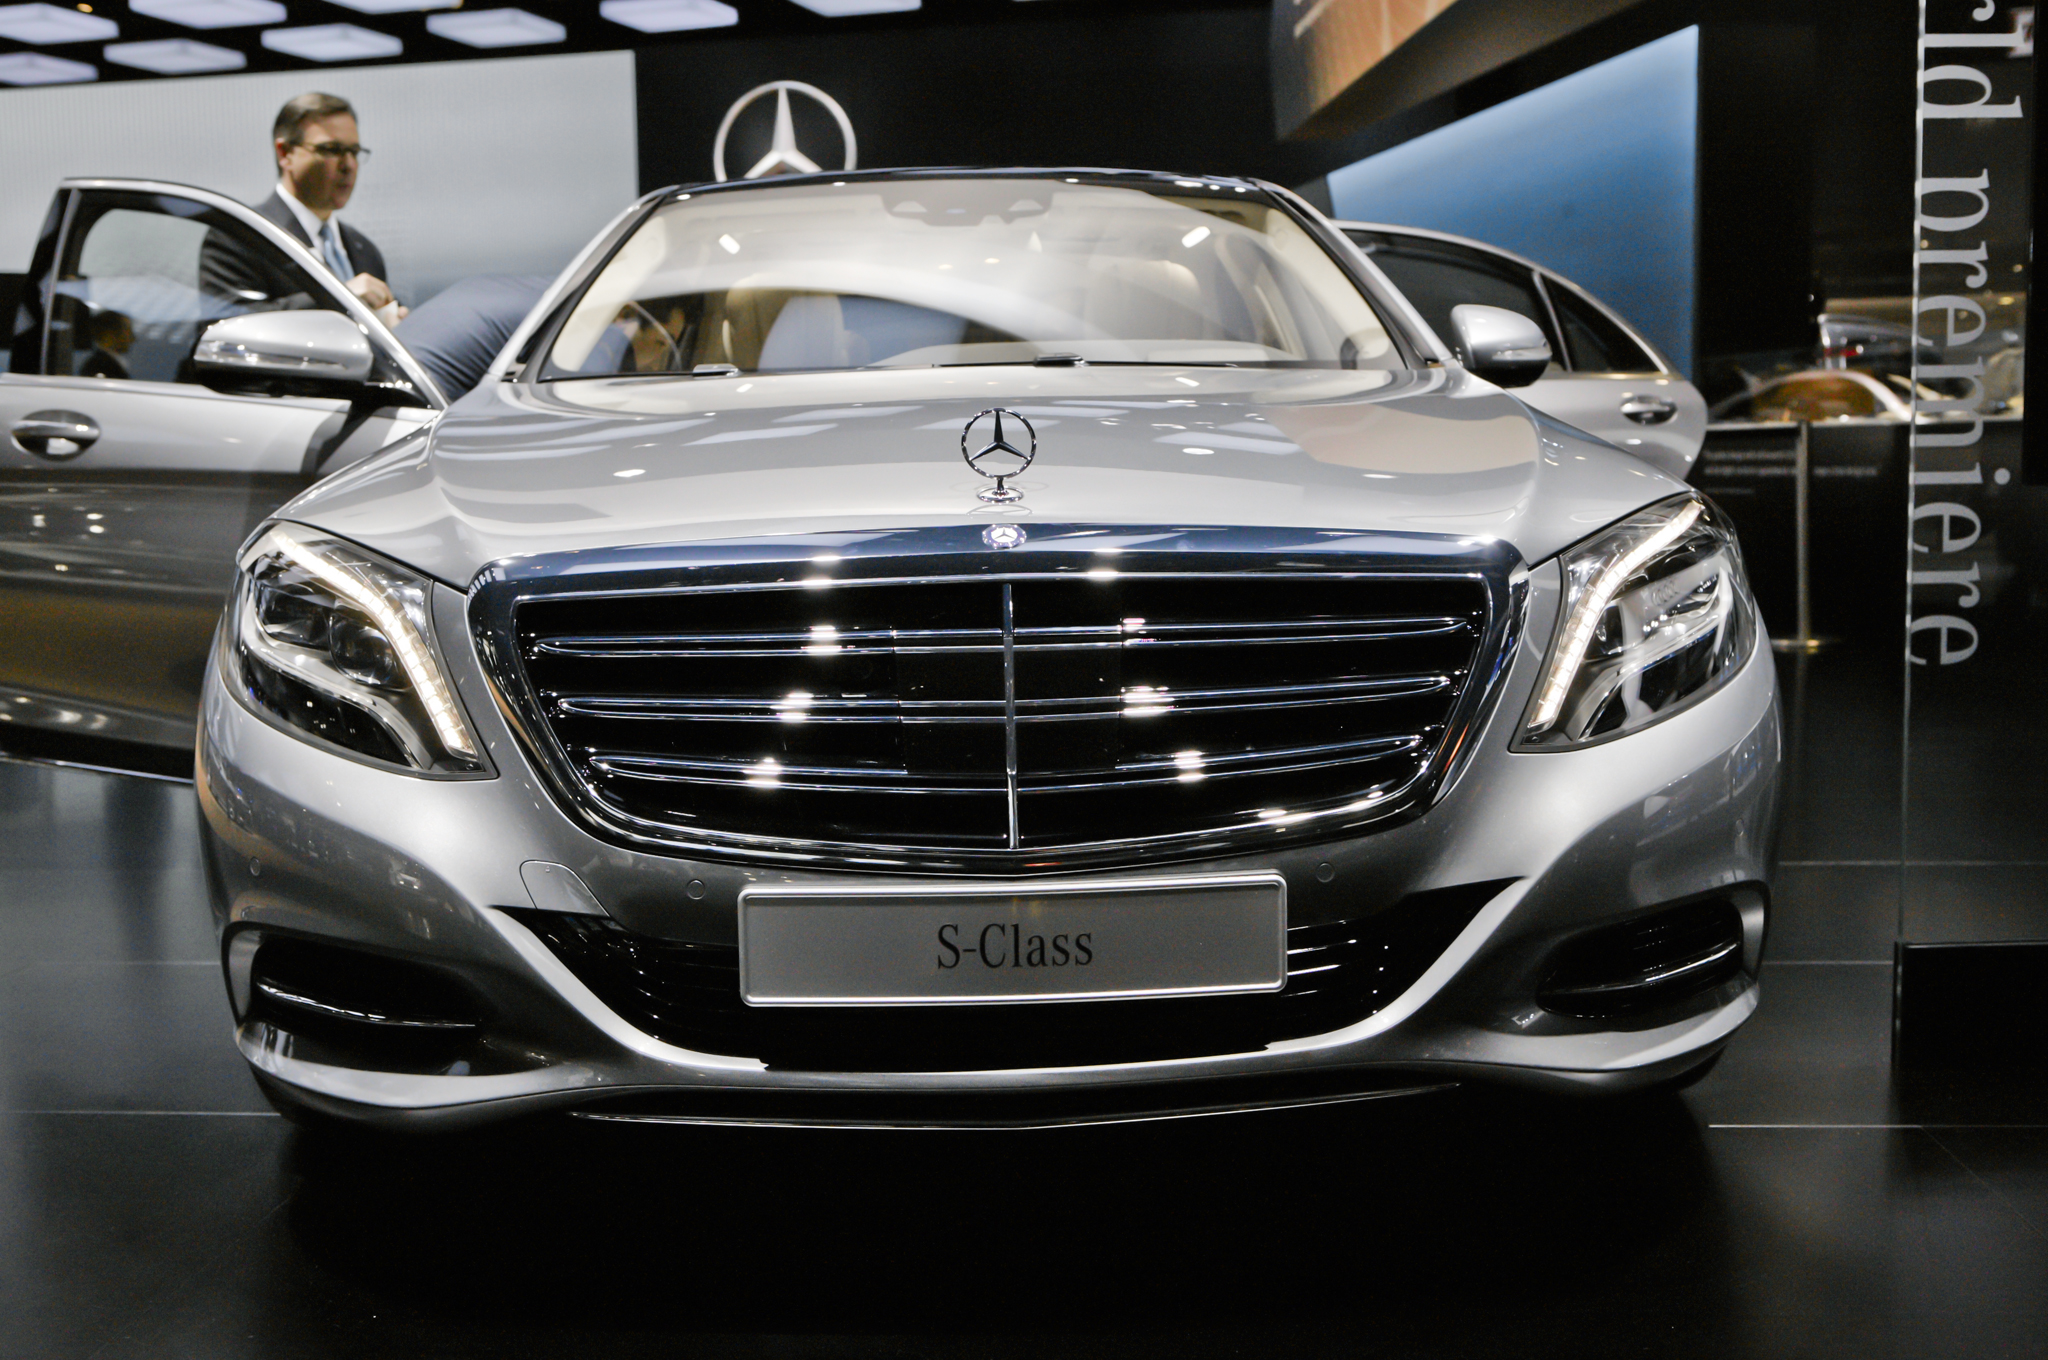 https://enthusiastnetwork.s3.amazonaws.com/uploads/sites/5/2014/01/2015-Mercedes-Benz-S600-front-end.jpg?impolicy=entryimage